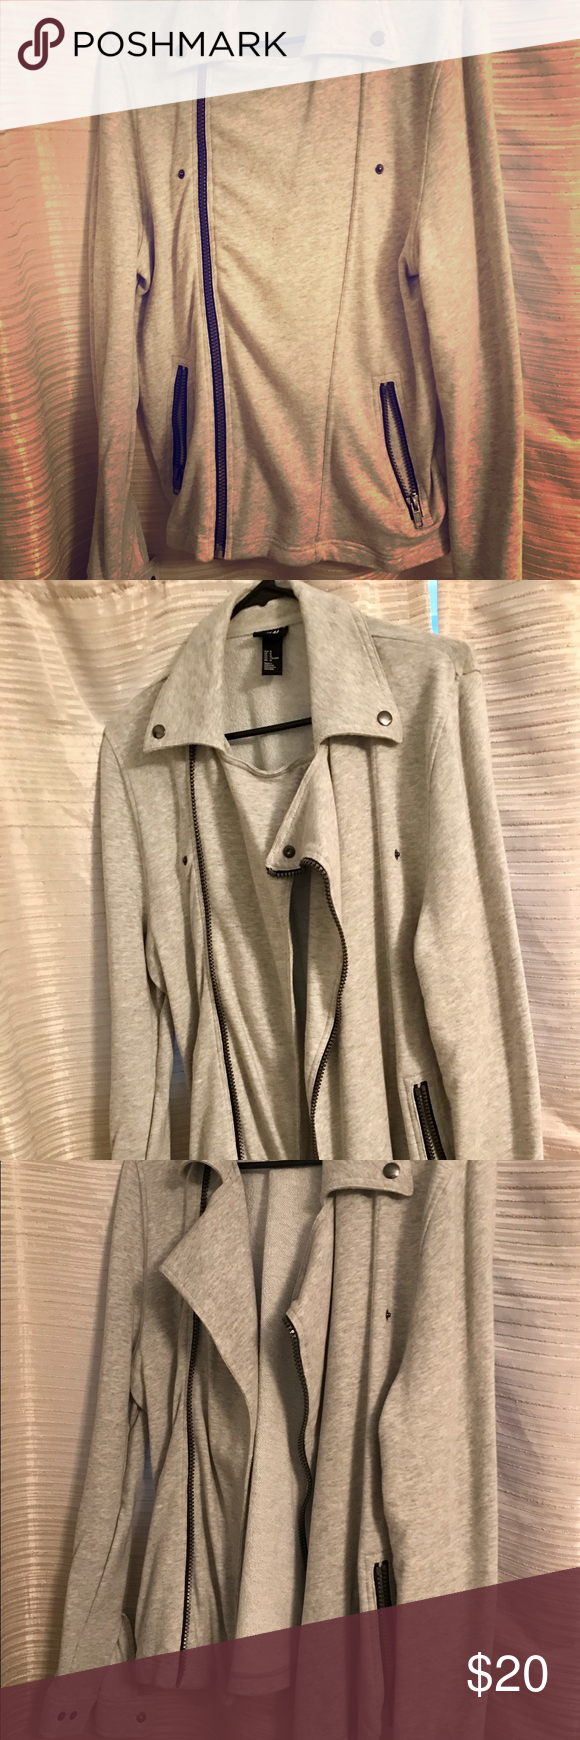 H&M Biker Style Sweater Jacket (With images) Biker style